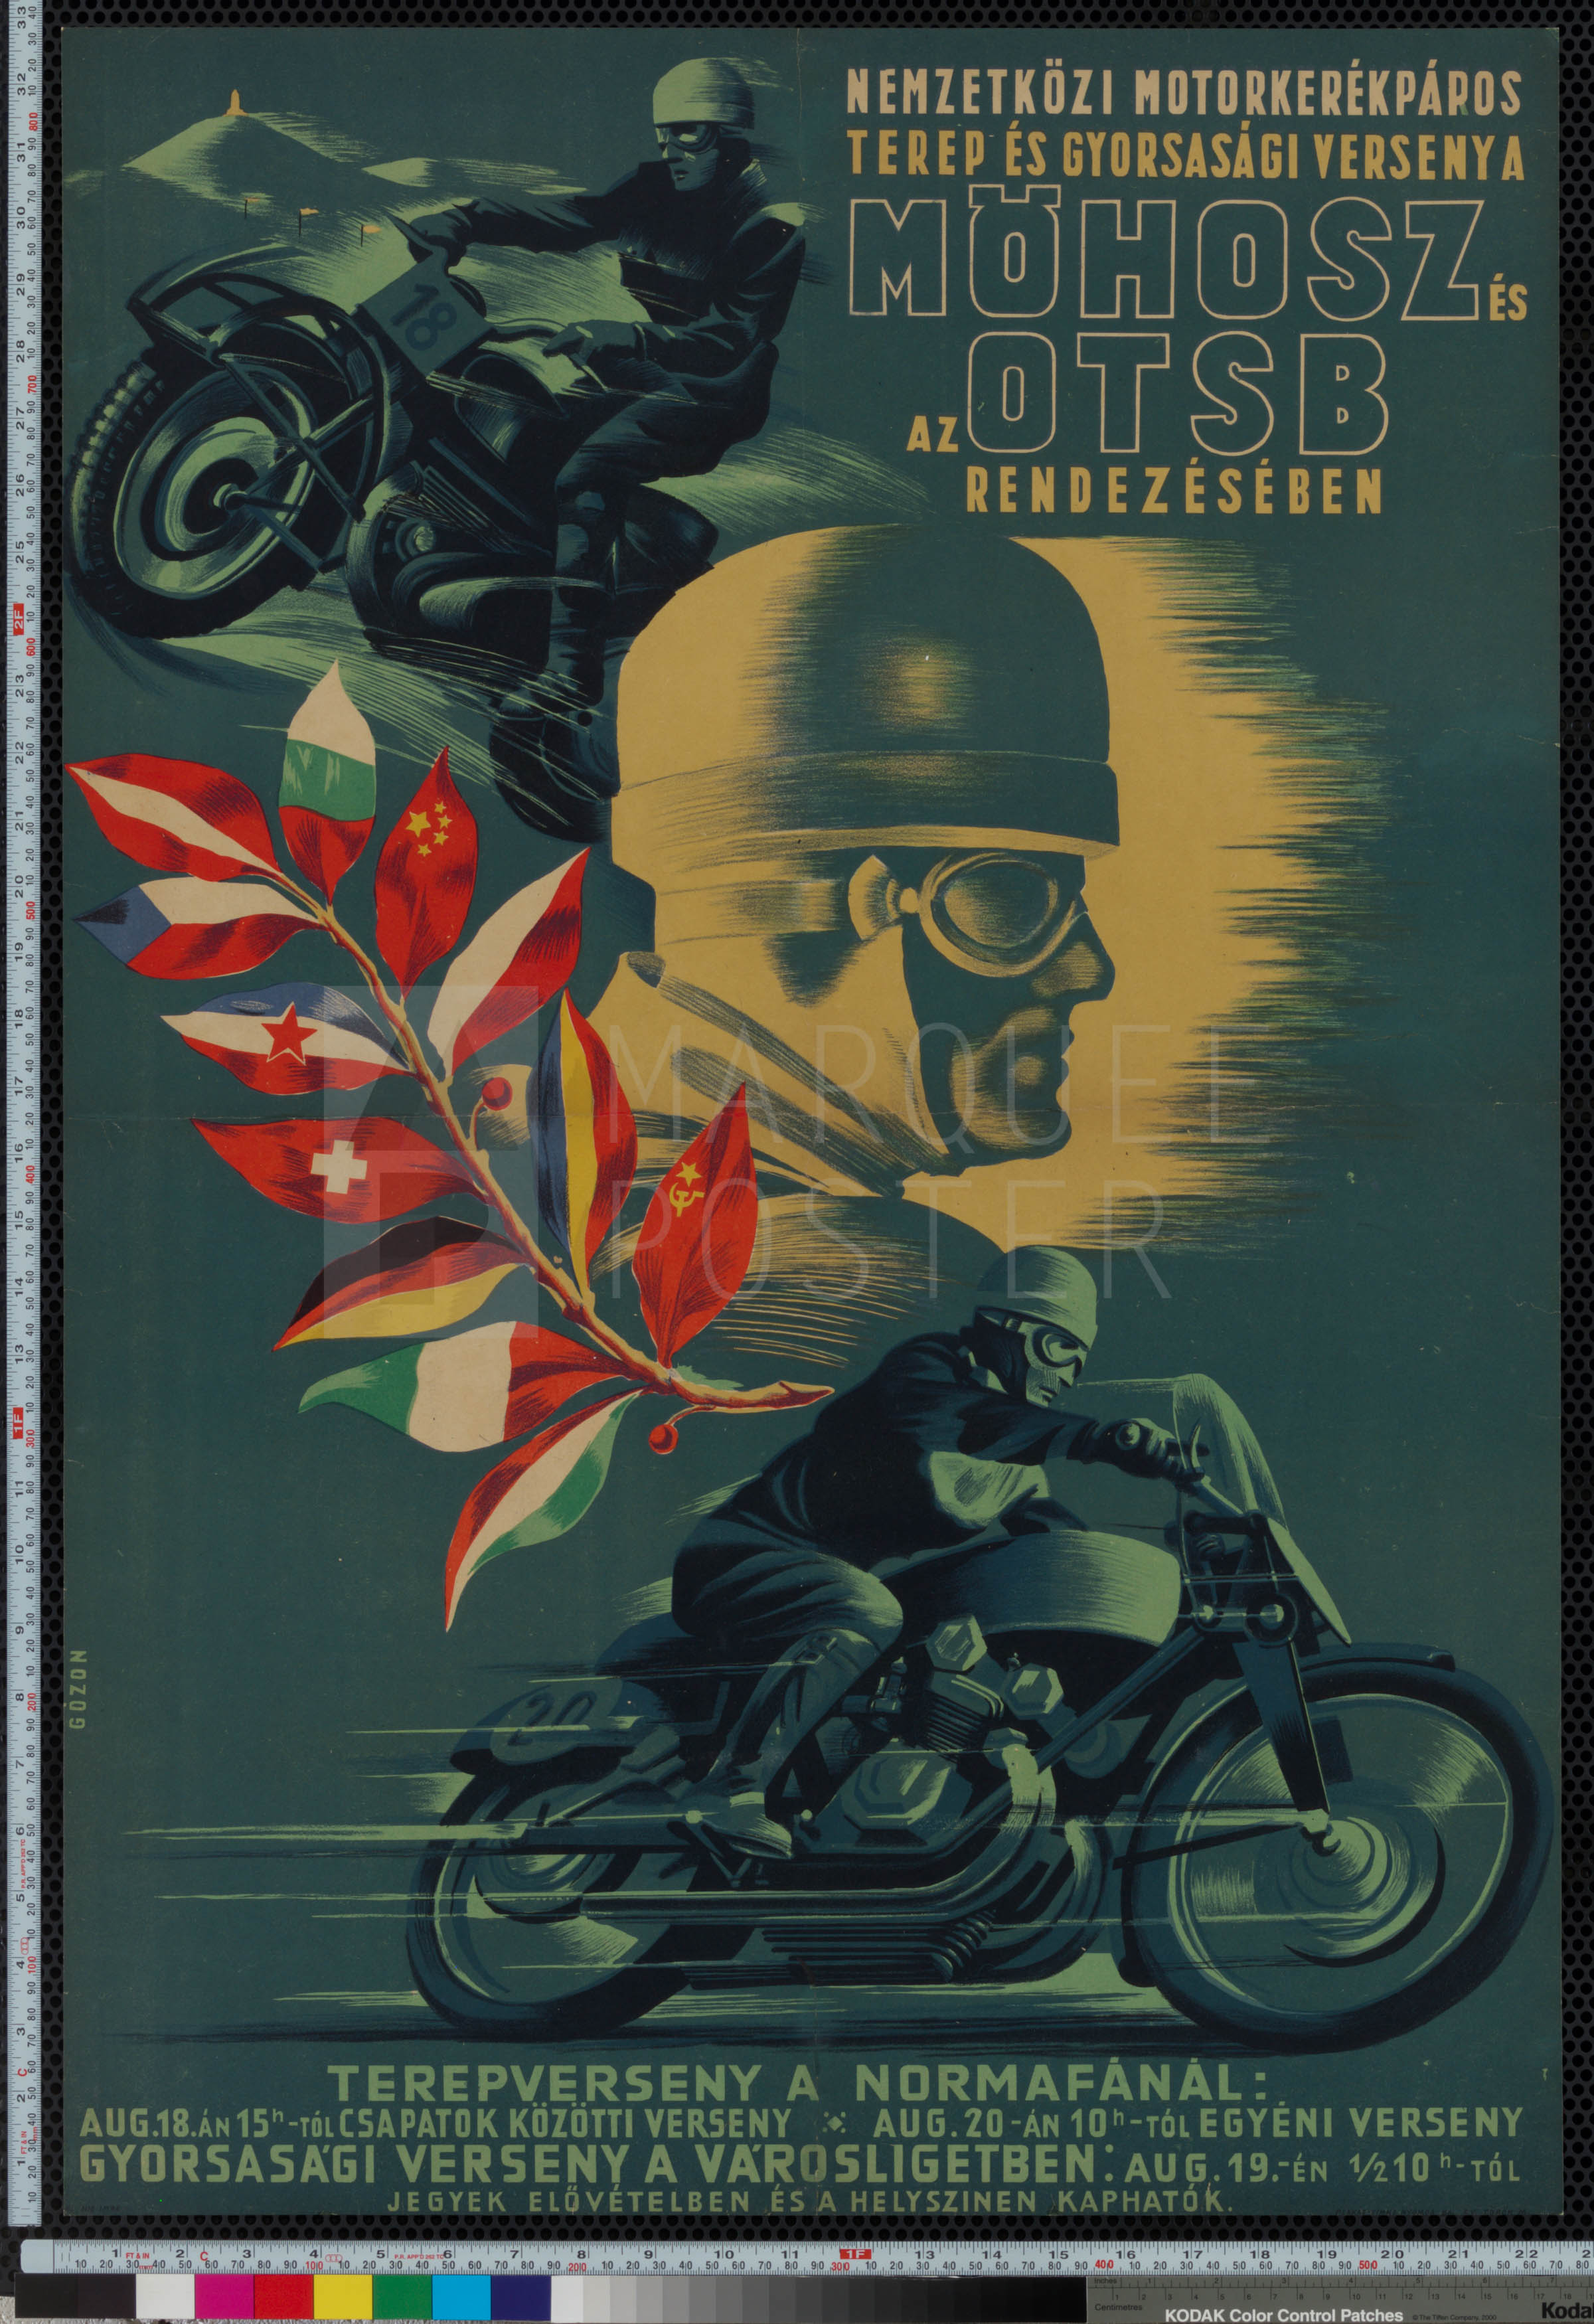 35-international-motorcycle-trail-and-speed-competition-hungarian-a1-1956-02-7